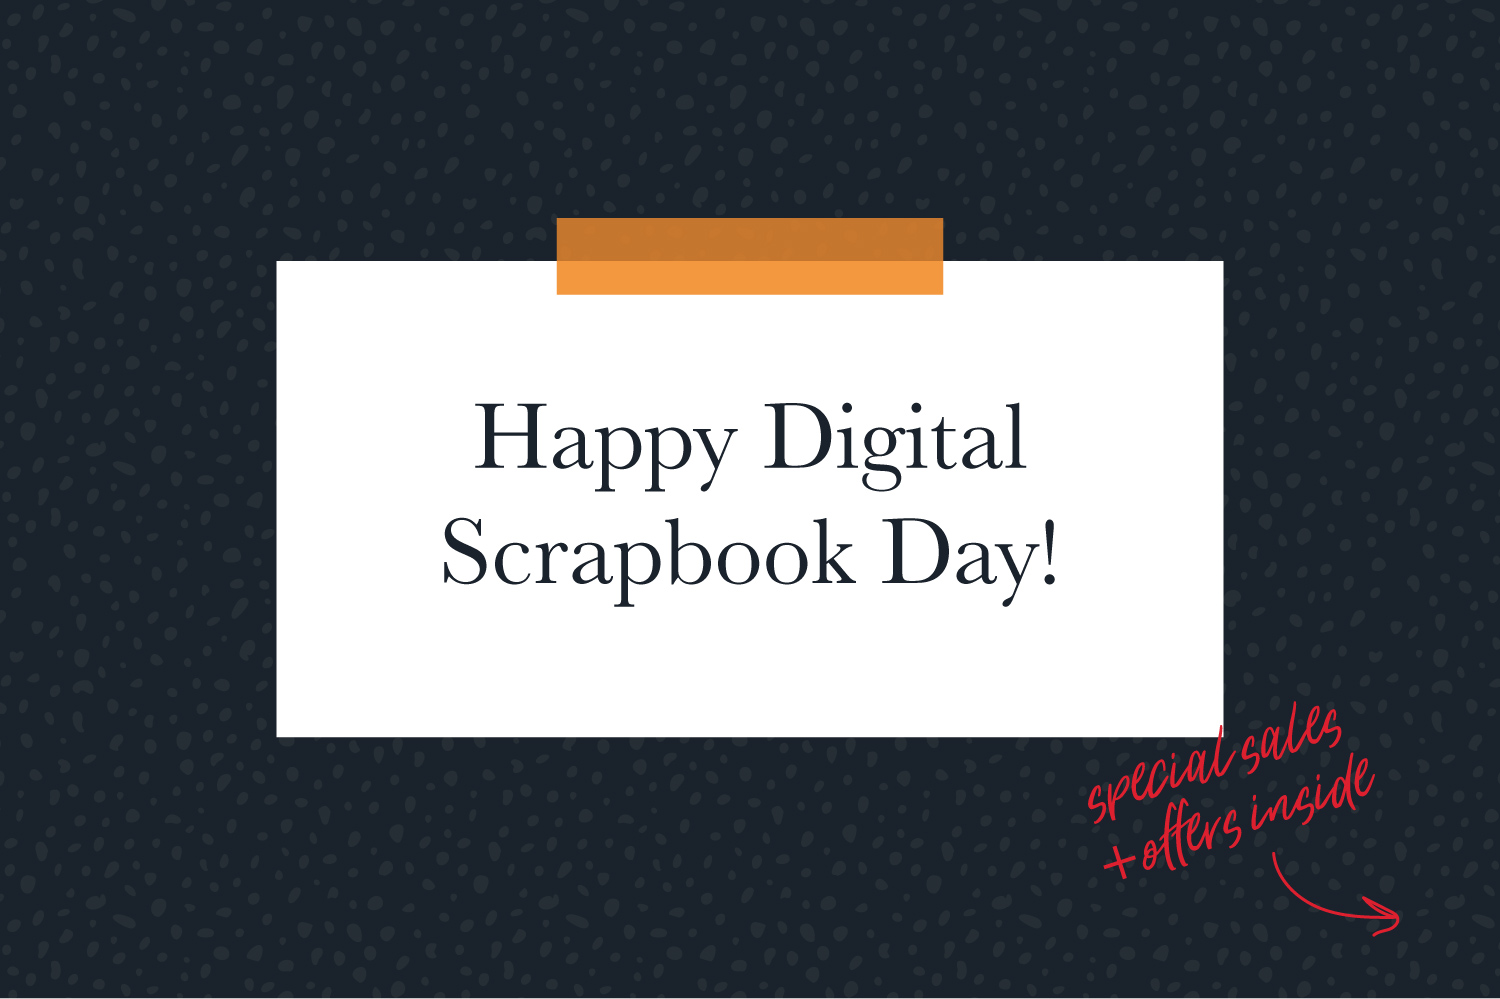 Digital Scrapbook Day sales & offers